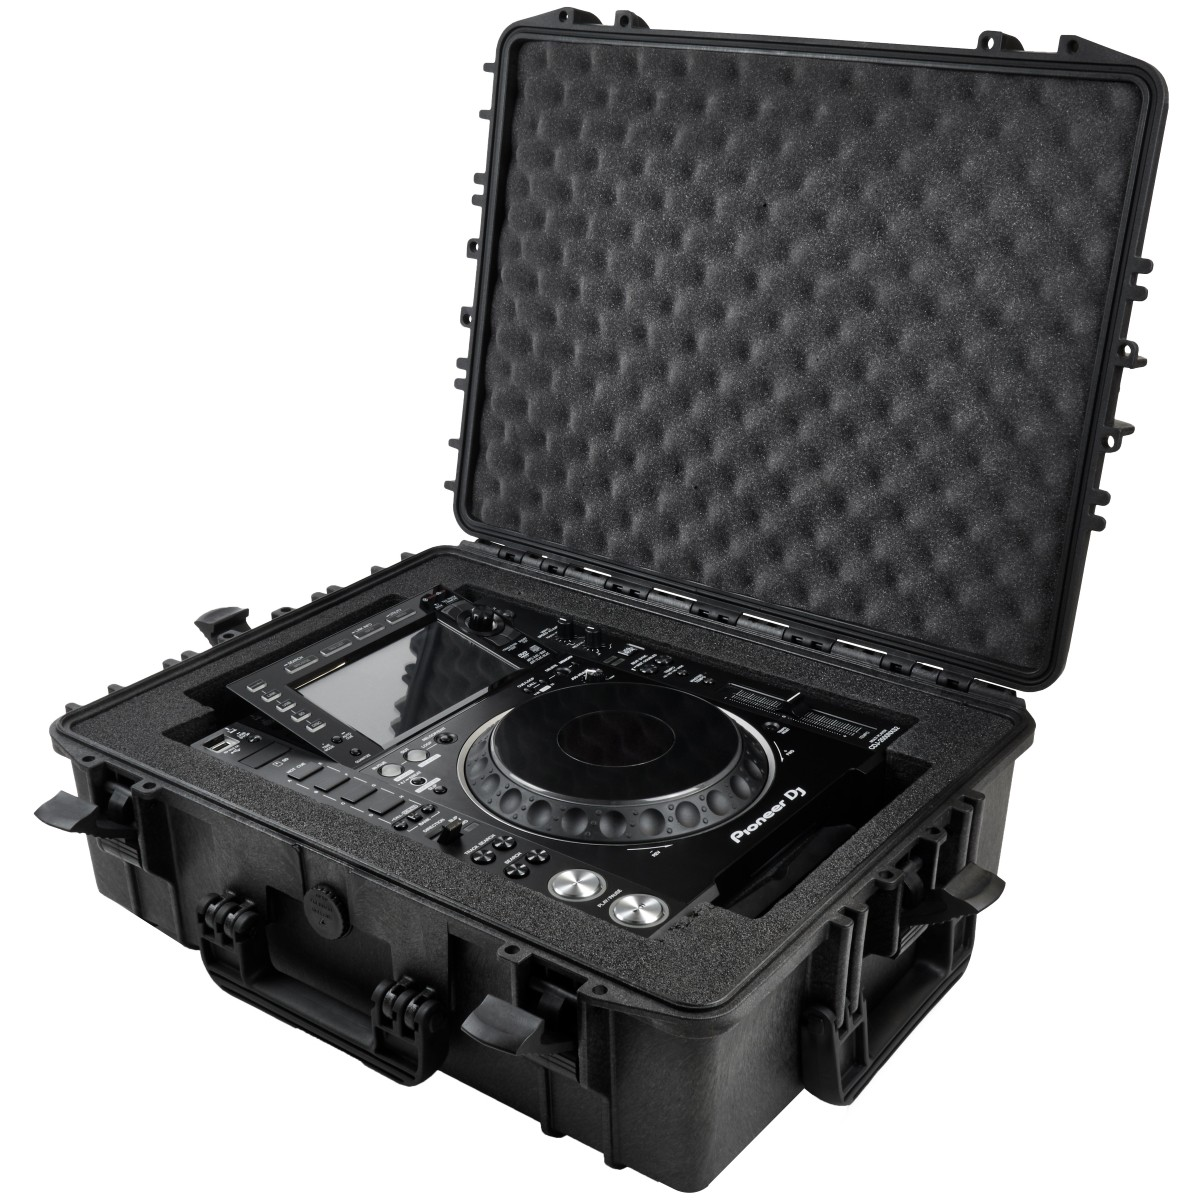 FLIGHT CASE PIONEER DJRC-MULTI1 CDJ e DJM Nexus2 CDJ-3000